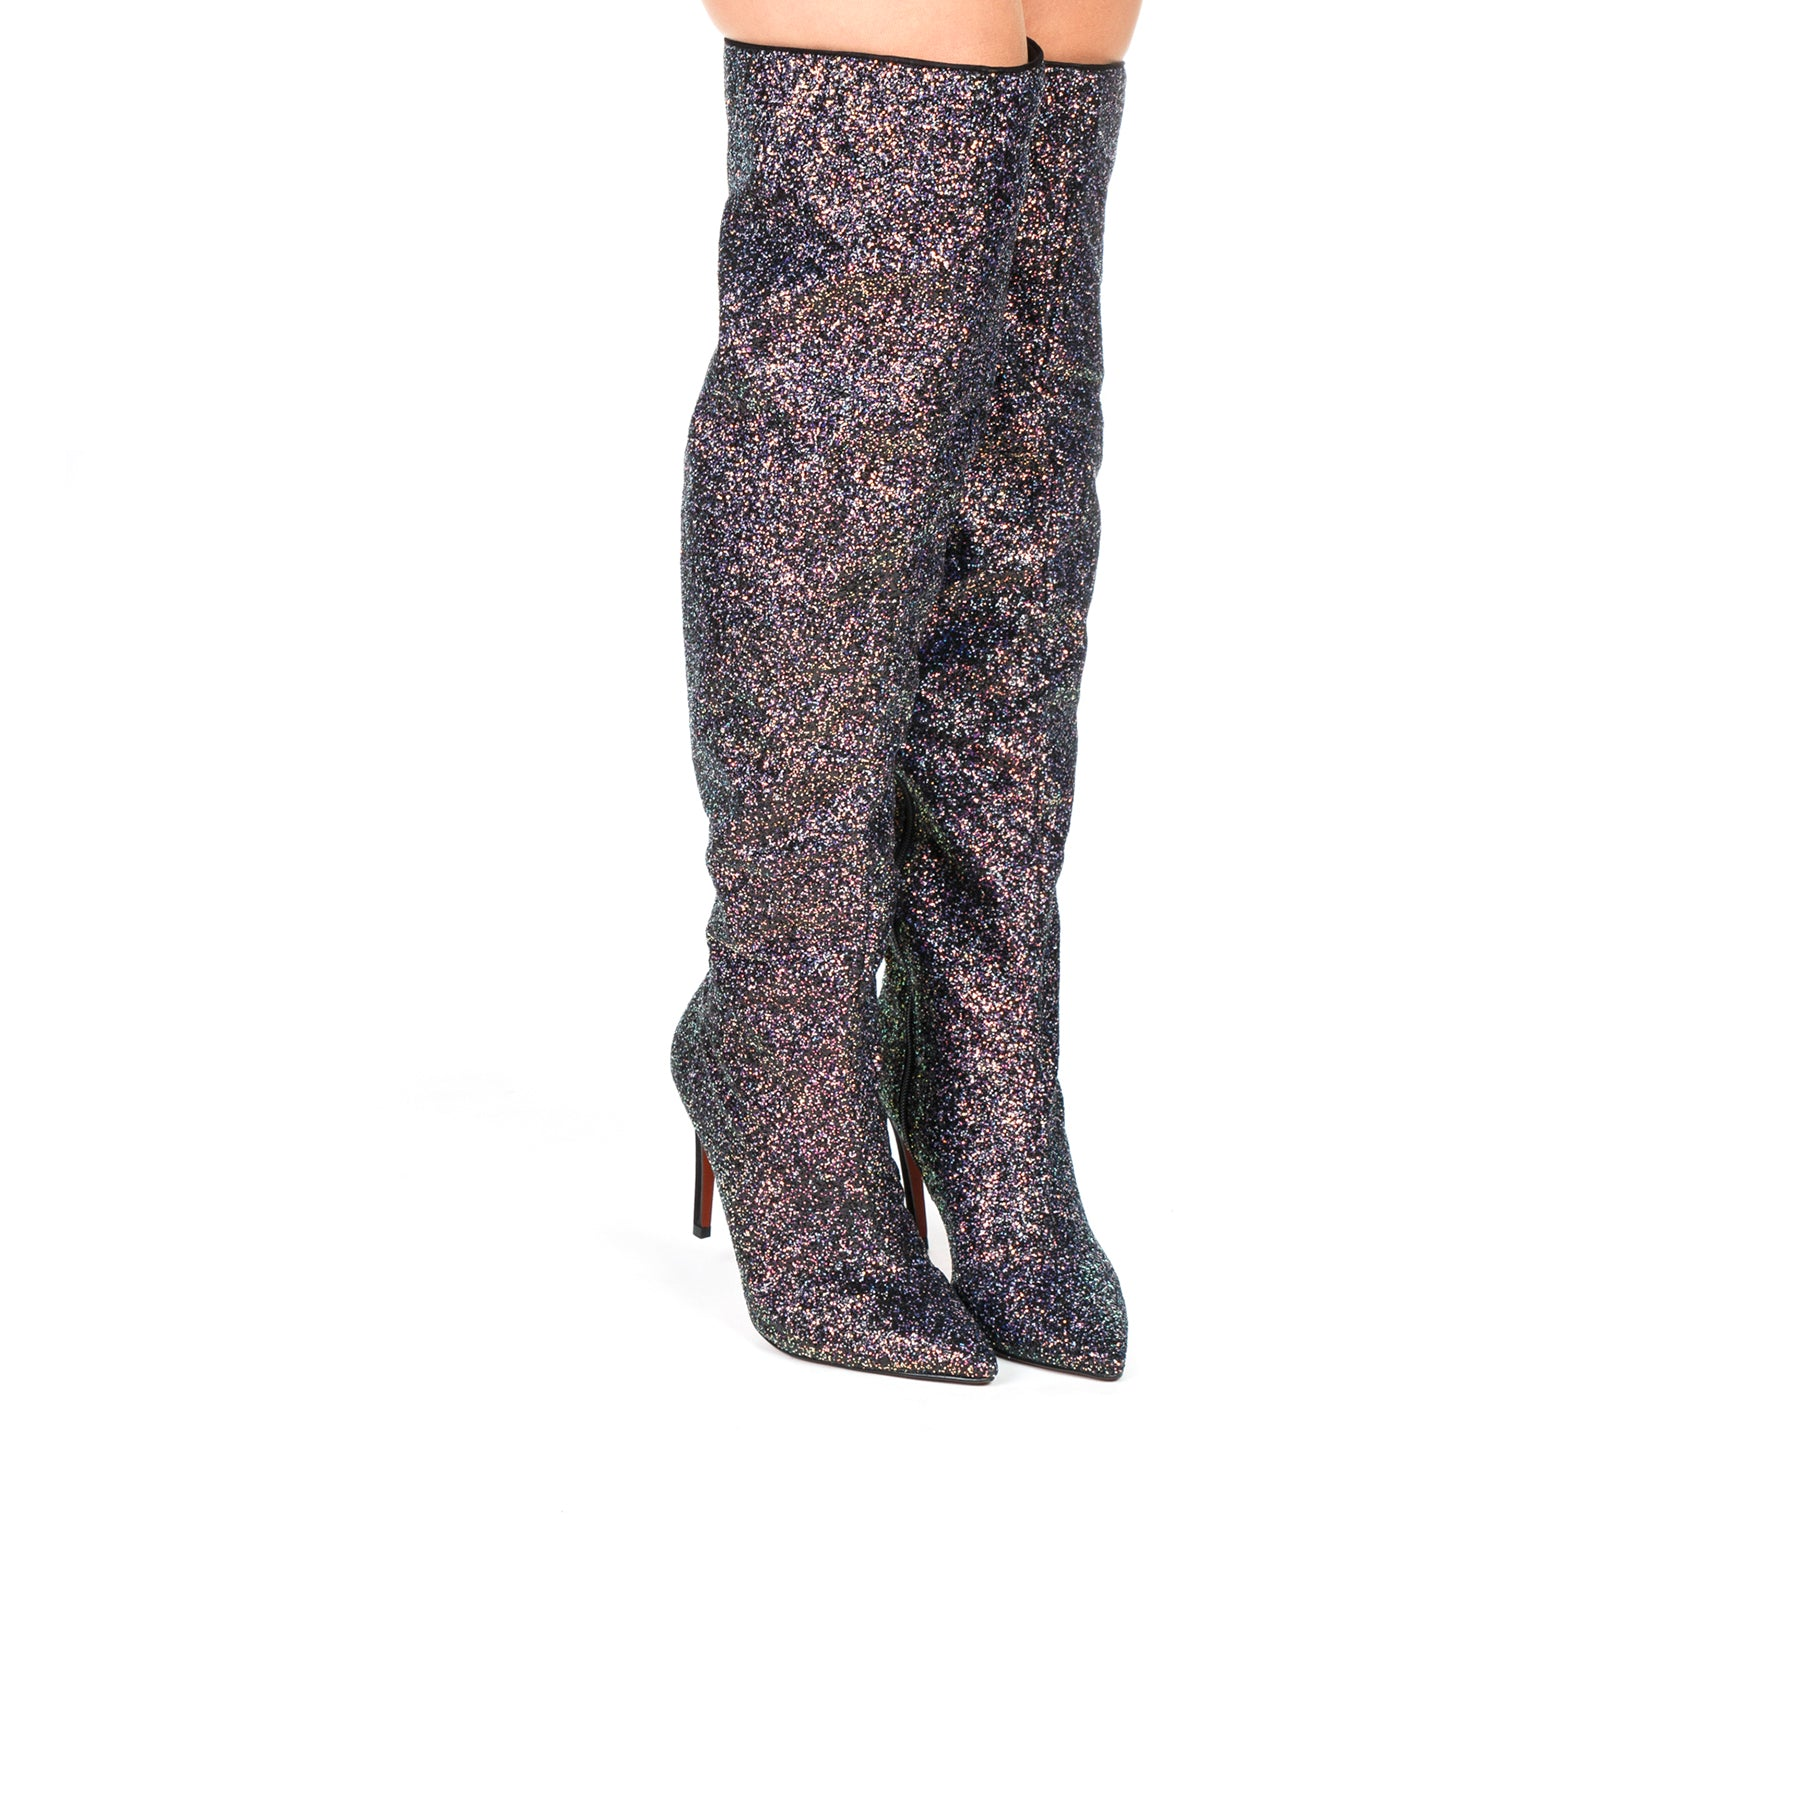 Jojo Black/Purple Glitter Boots